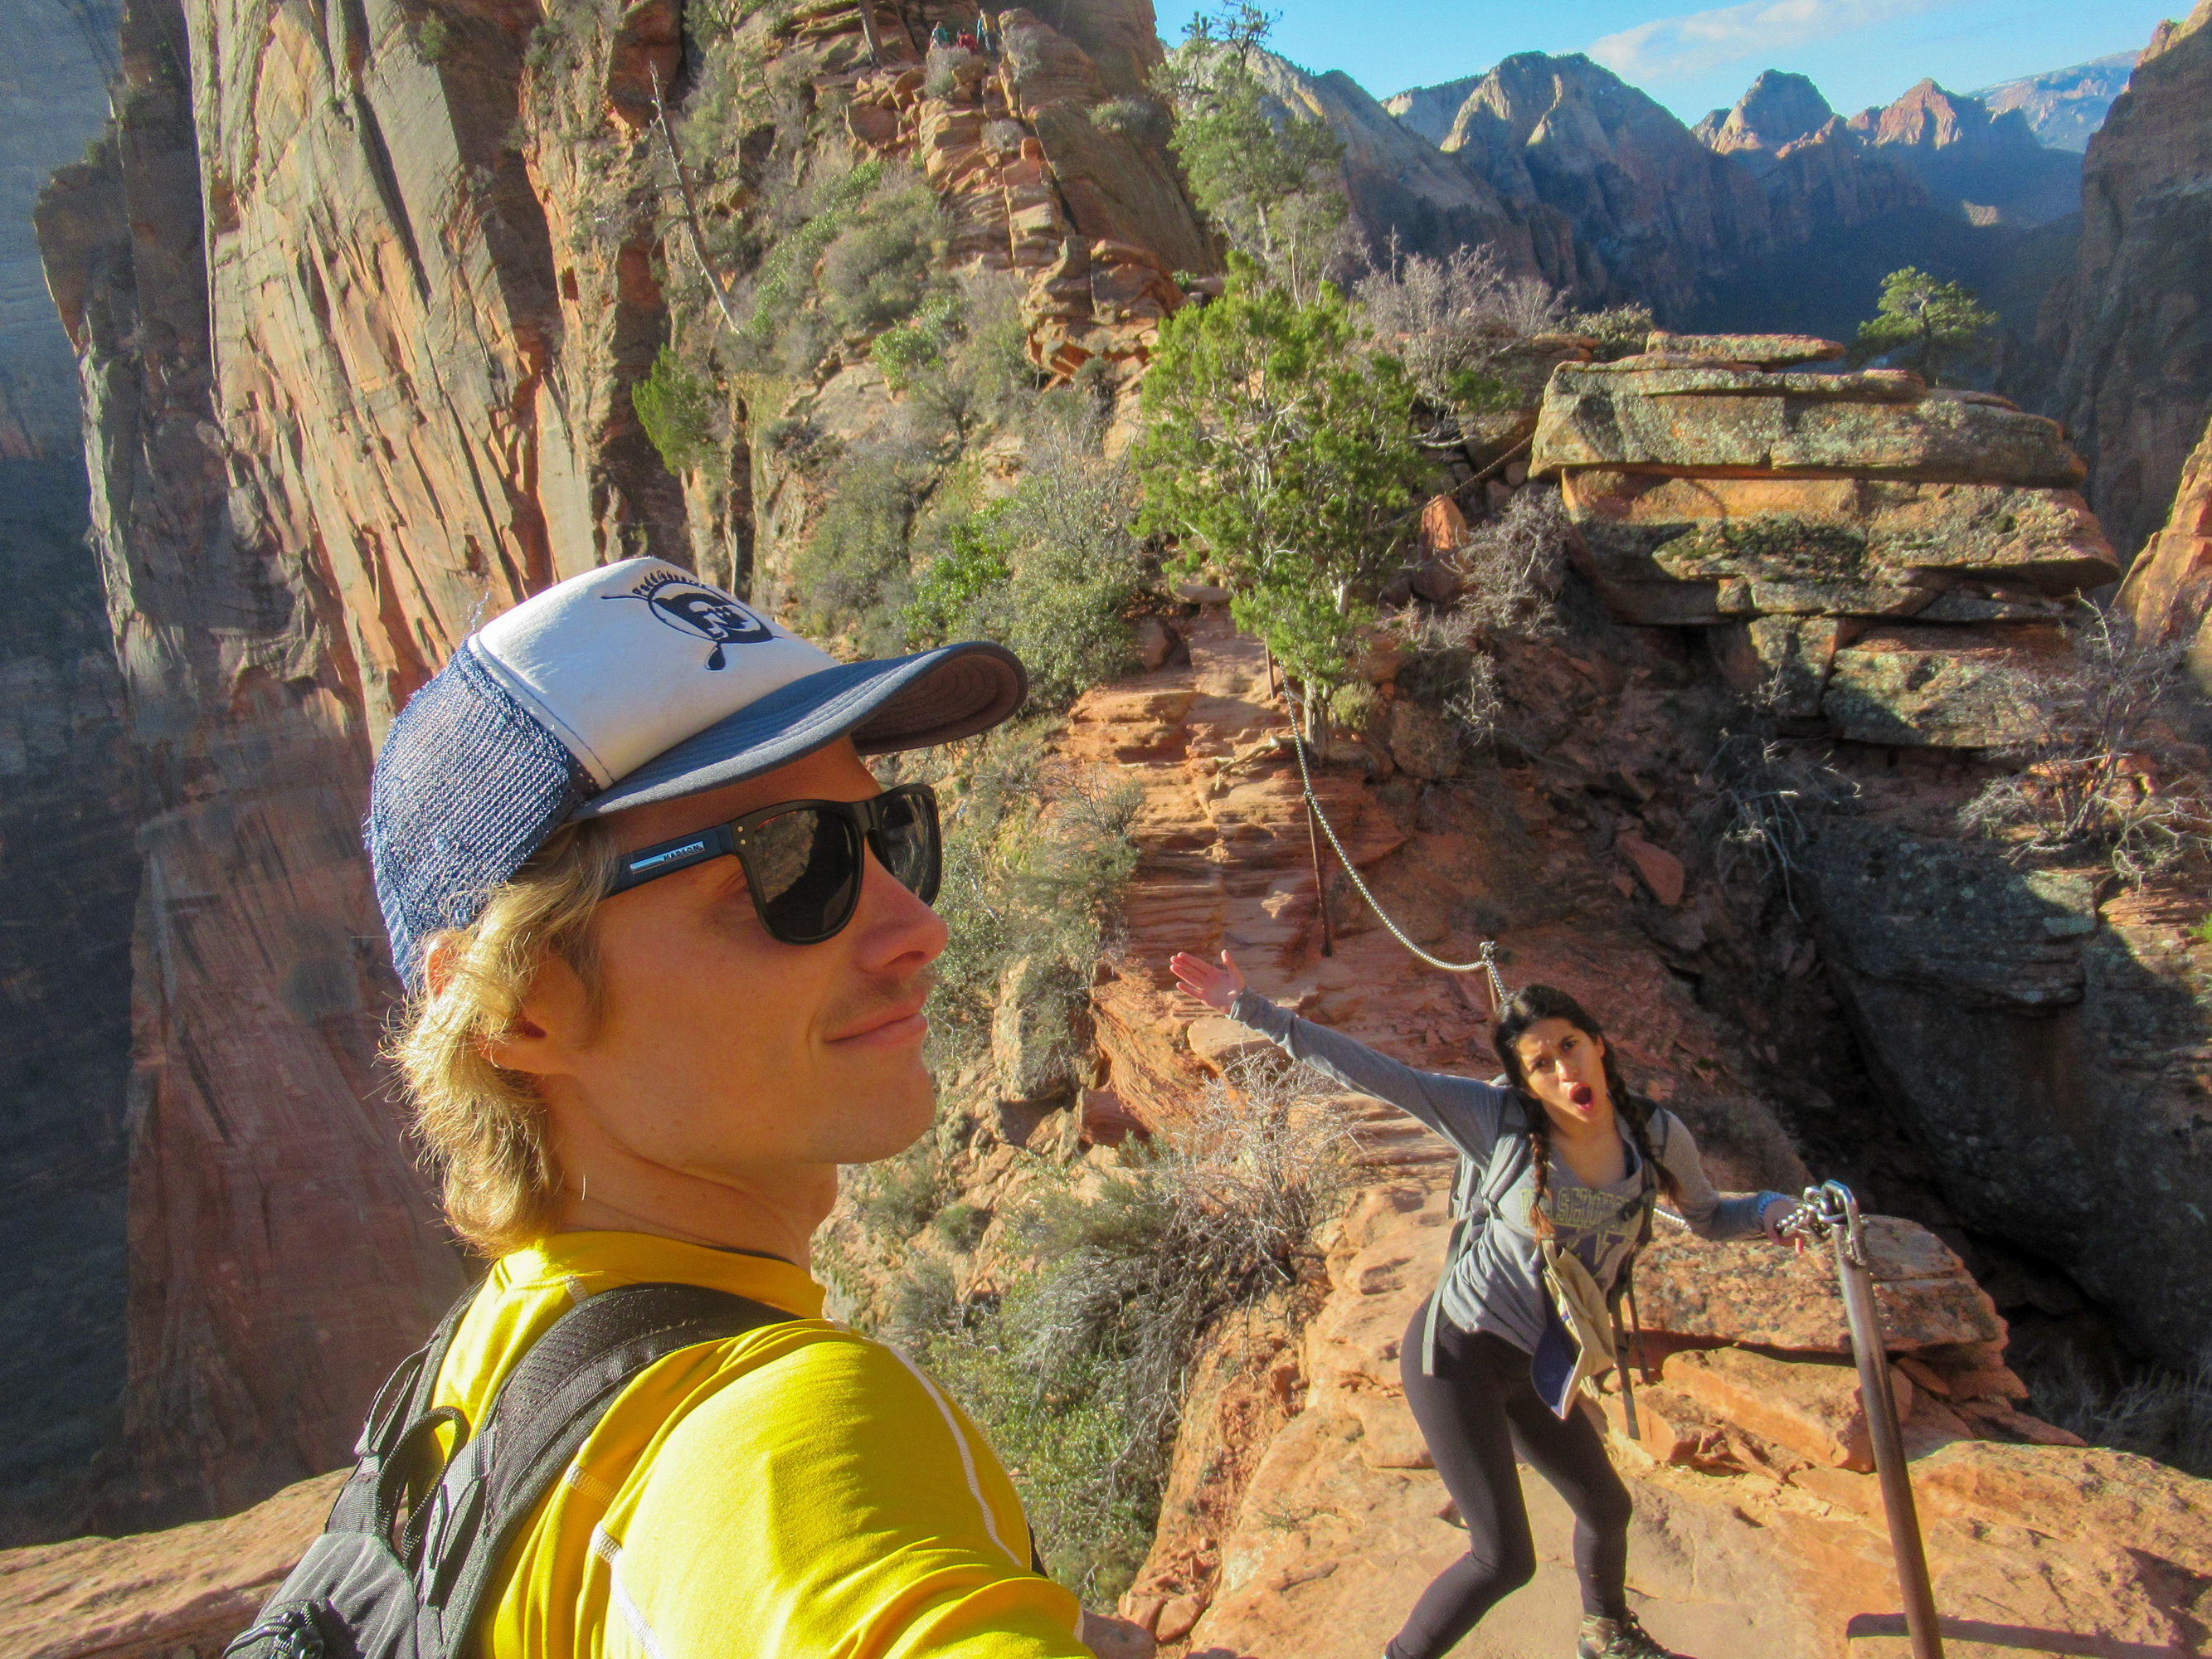 Starting the trail to Angels Landing in Zion.